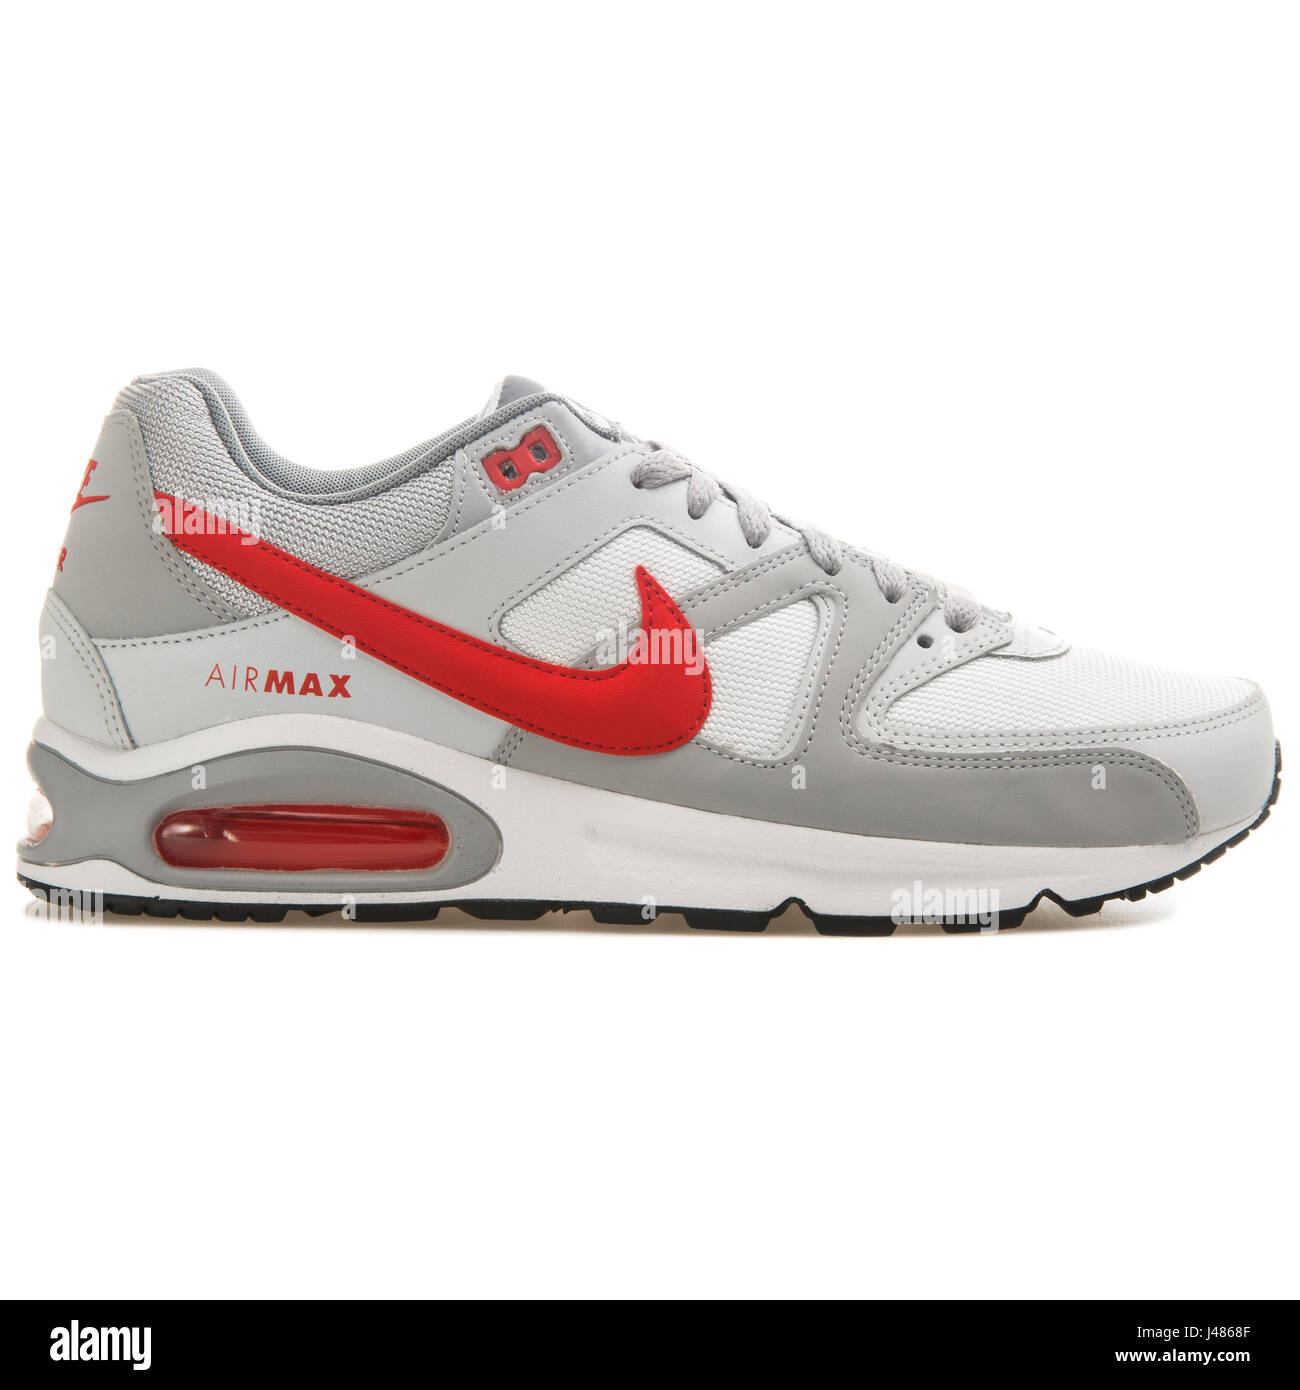 Nike Air Max Command 629993 106 Stock Photo: 140322127 Alamy